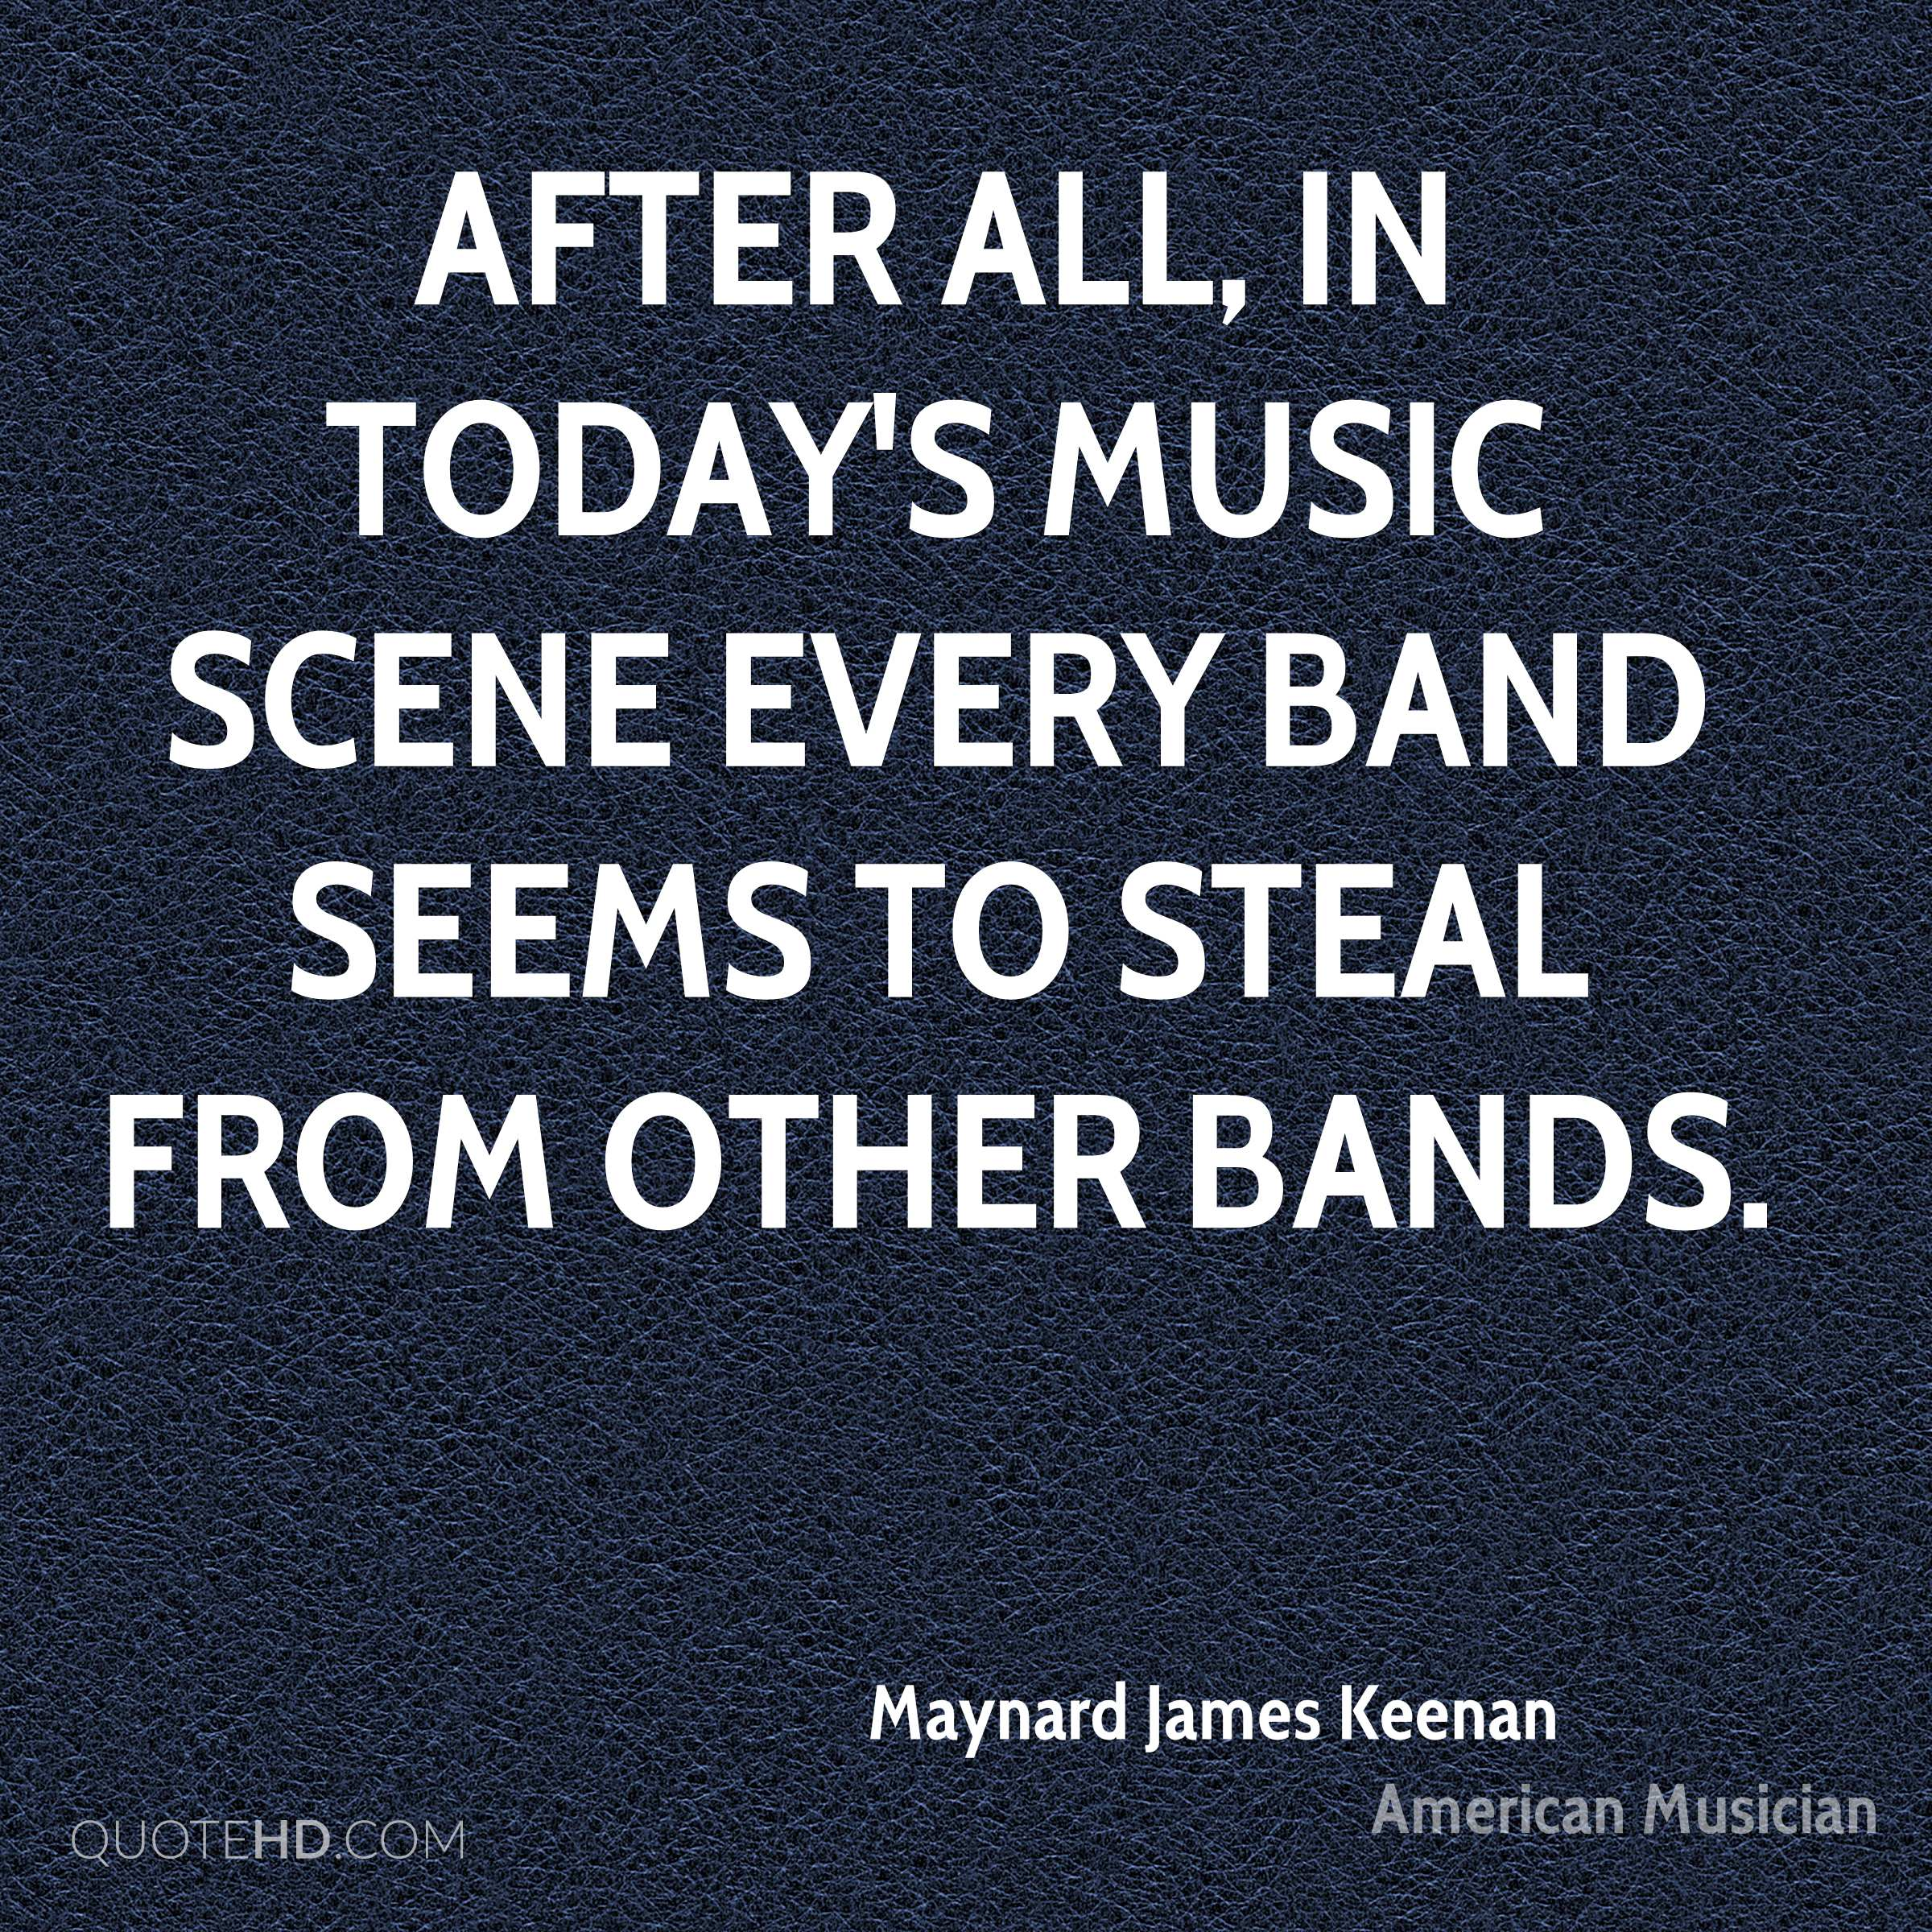 After all, in today's music scene every band seems to steal from other bands.